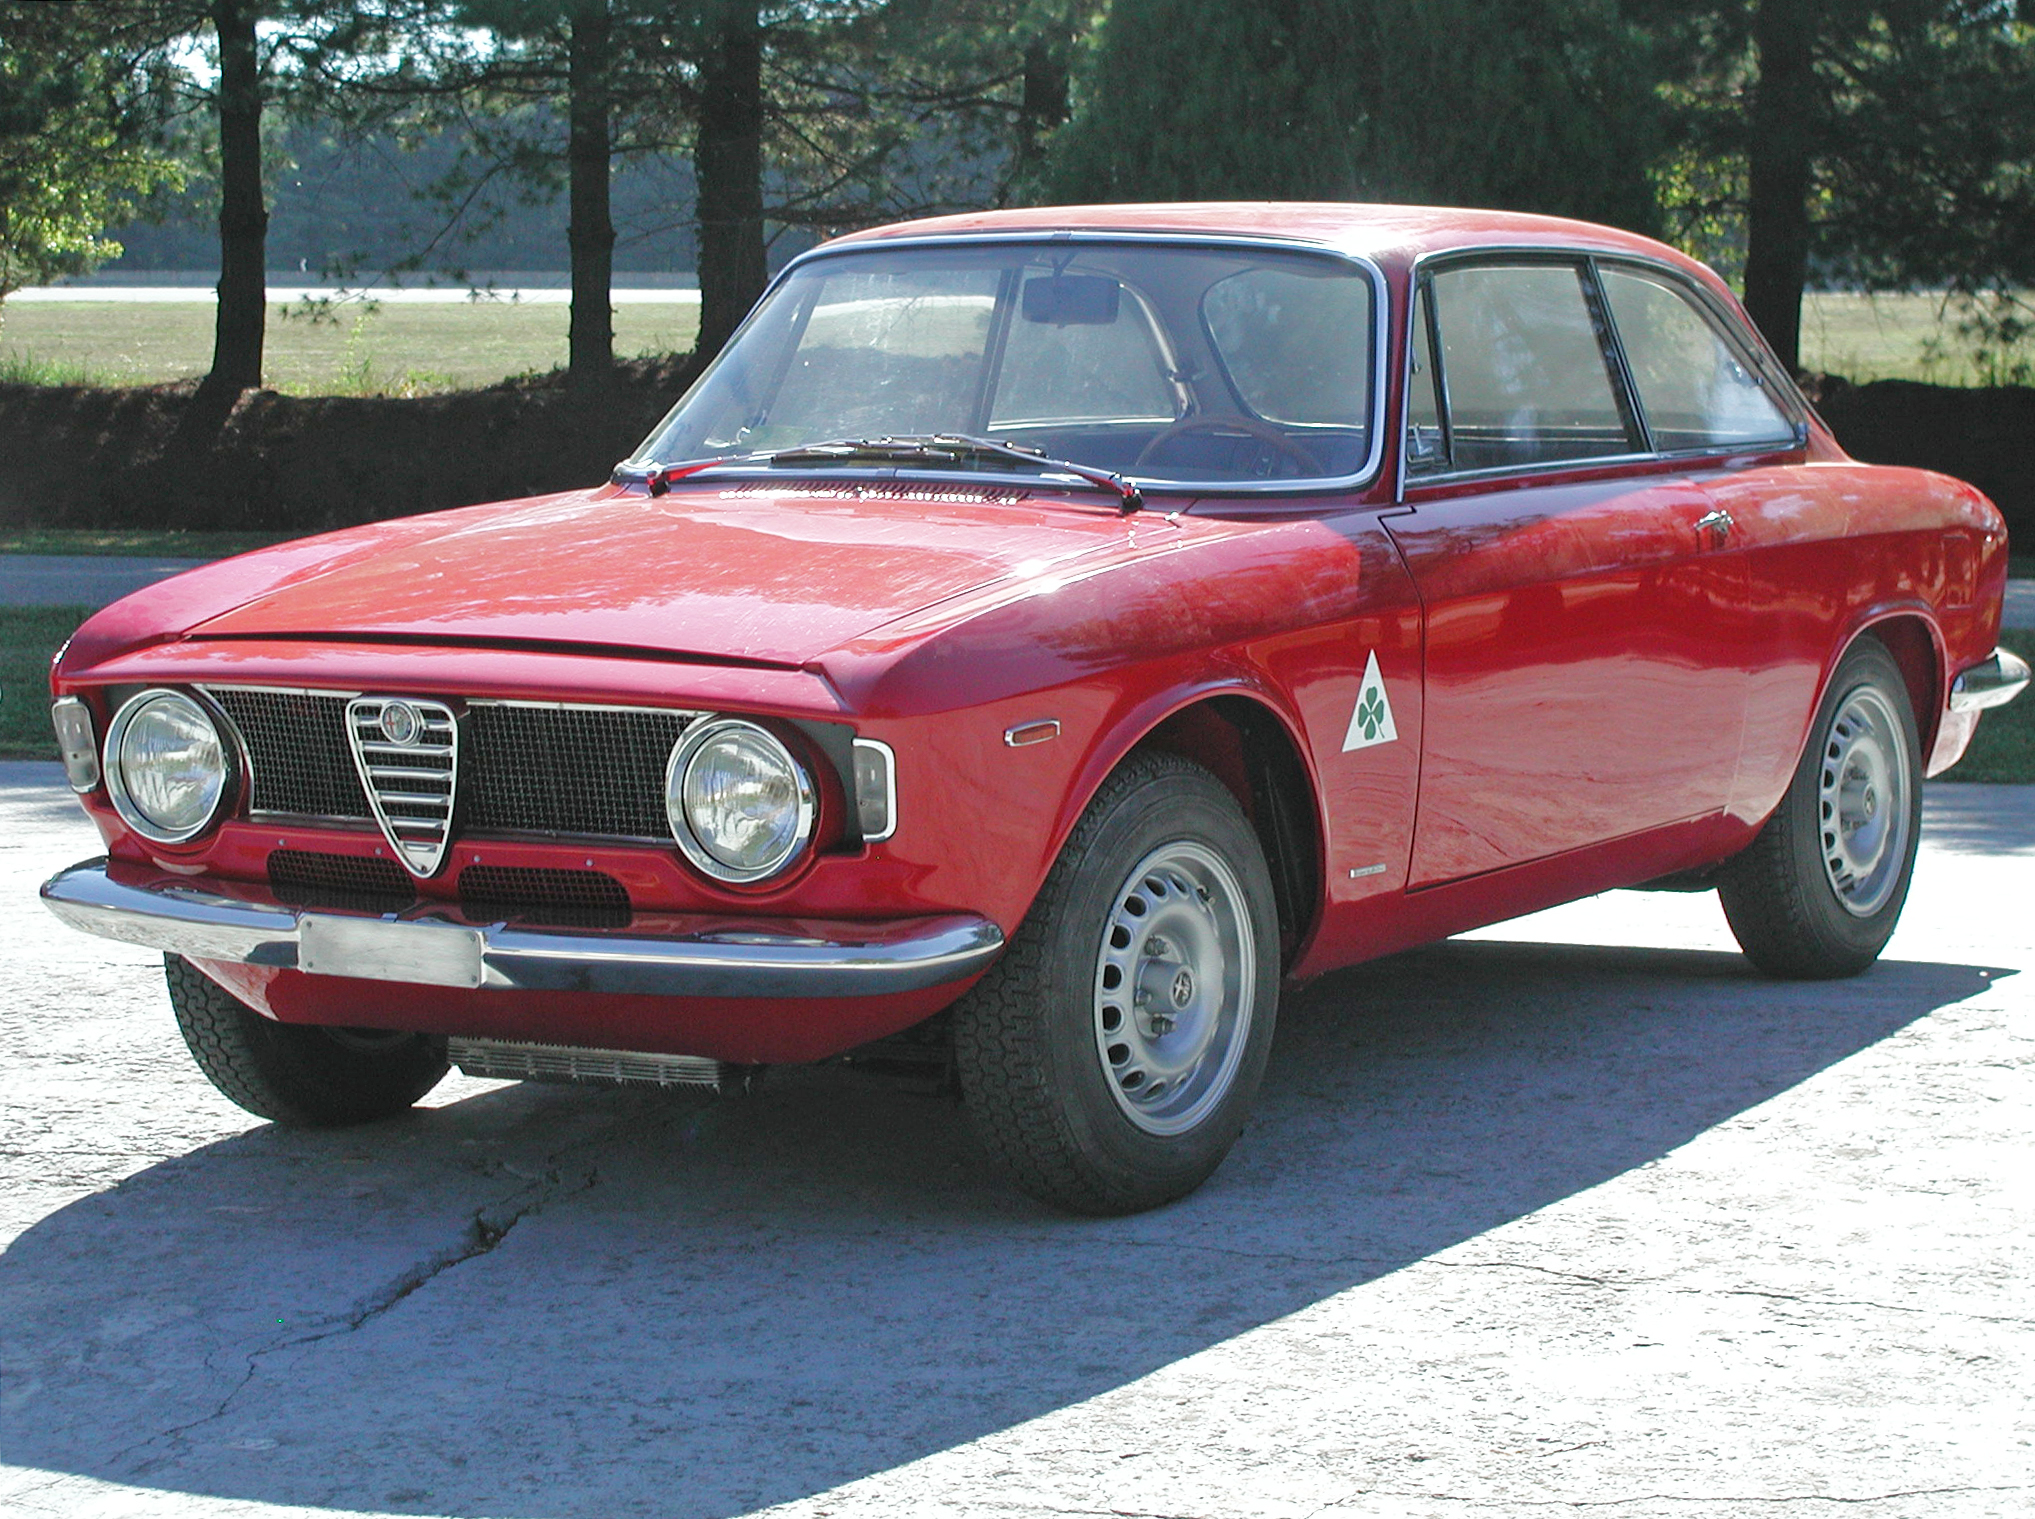 Alfa Romeo 105/115 Series Coupés - Wikipedia, the free encyclopedia